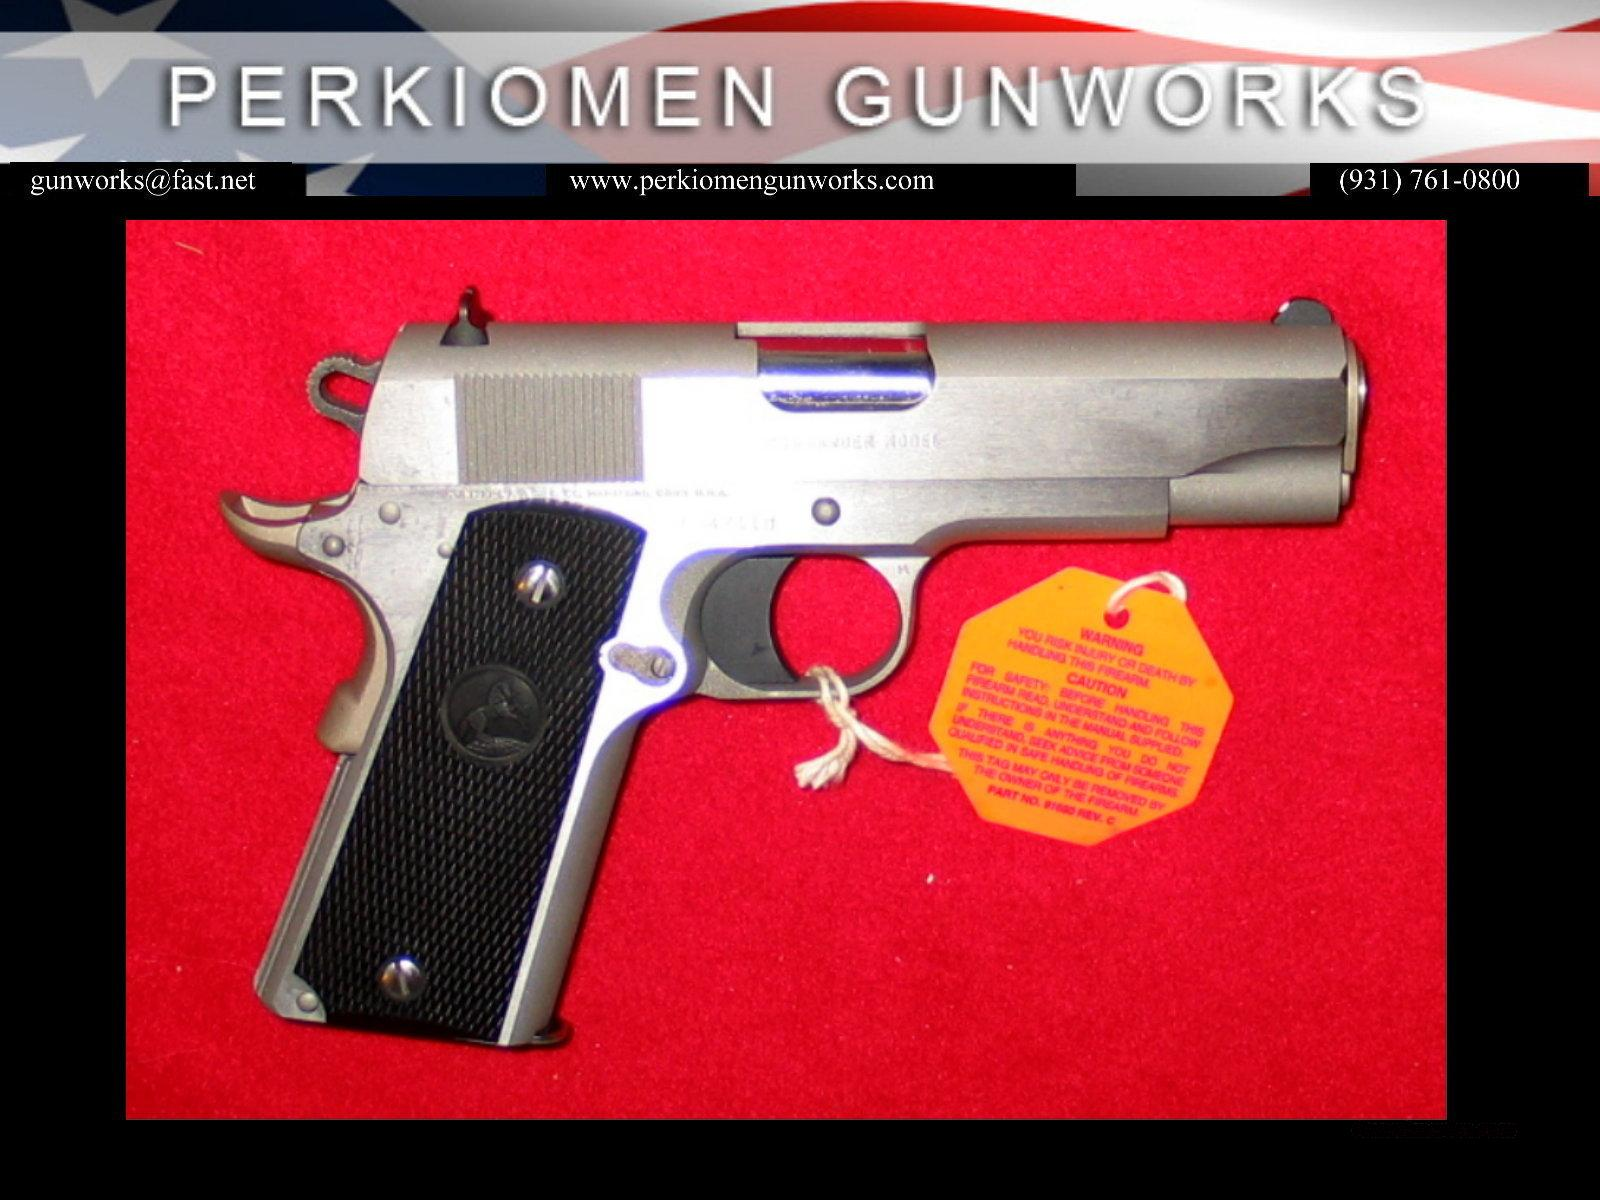 Combat Commander Stainless Steel 1991A1 - New in Box.  Guns > Pistols > Colt Automatic Pistols (1911 & Var)